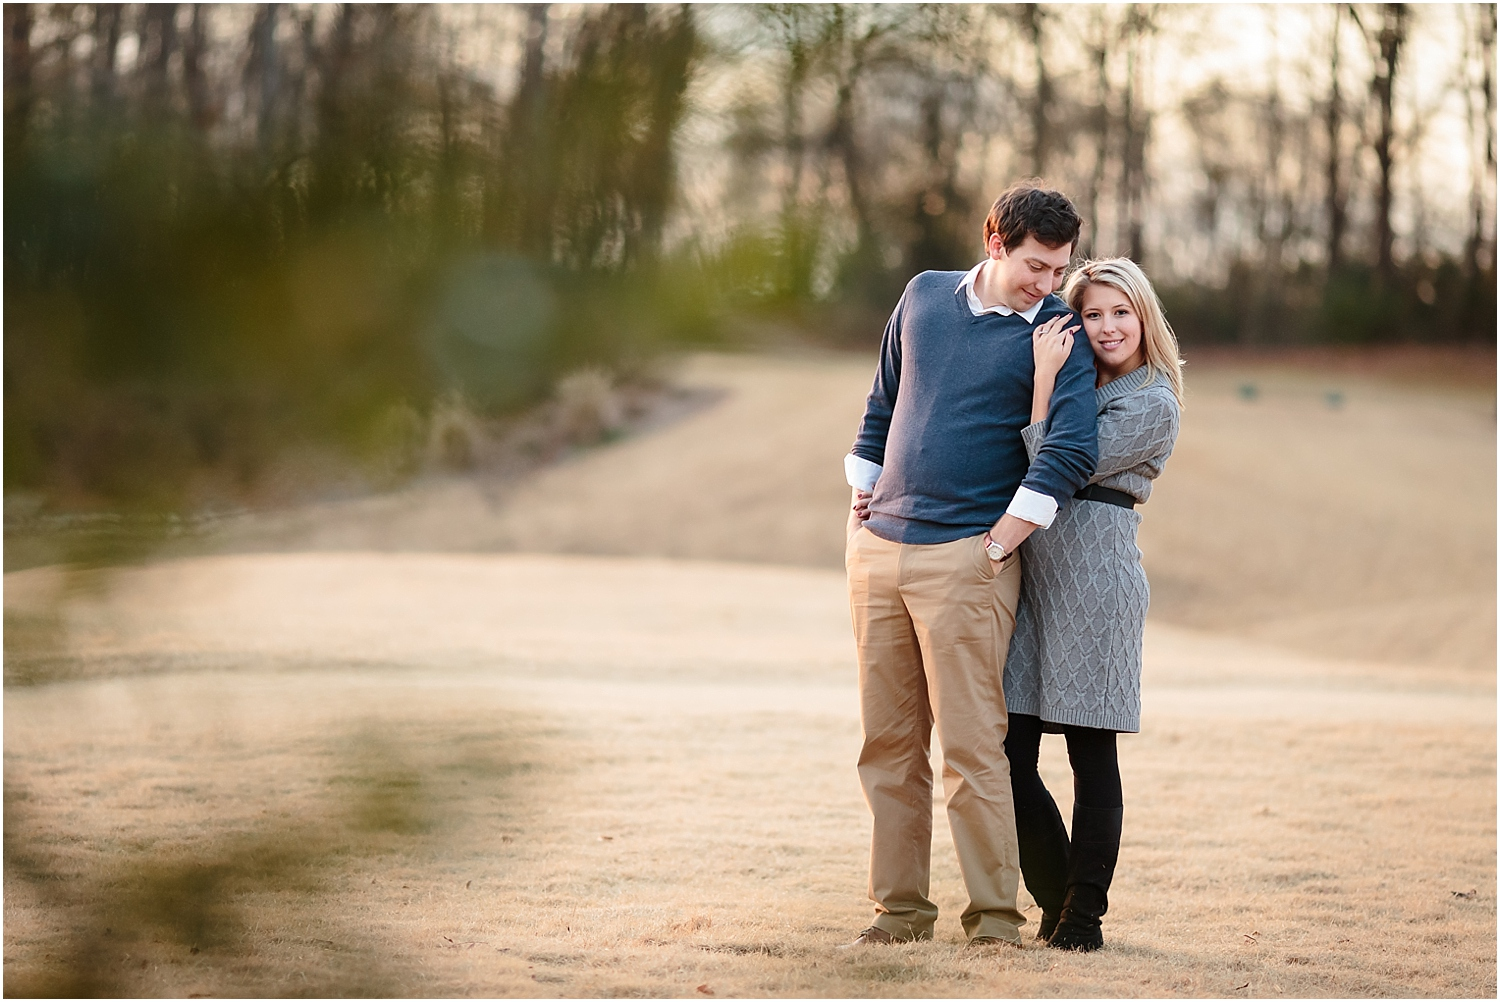 141207--0445clemson-engagement-shoot_blog.jpg